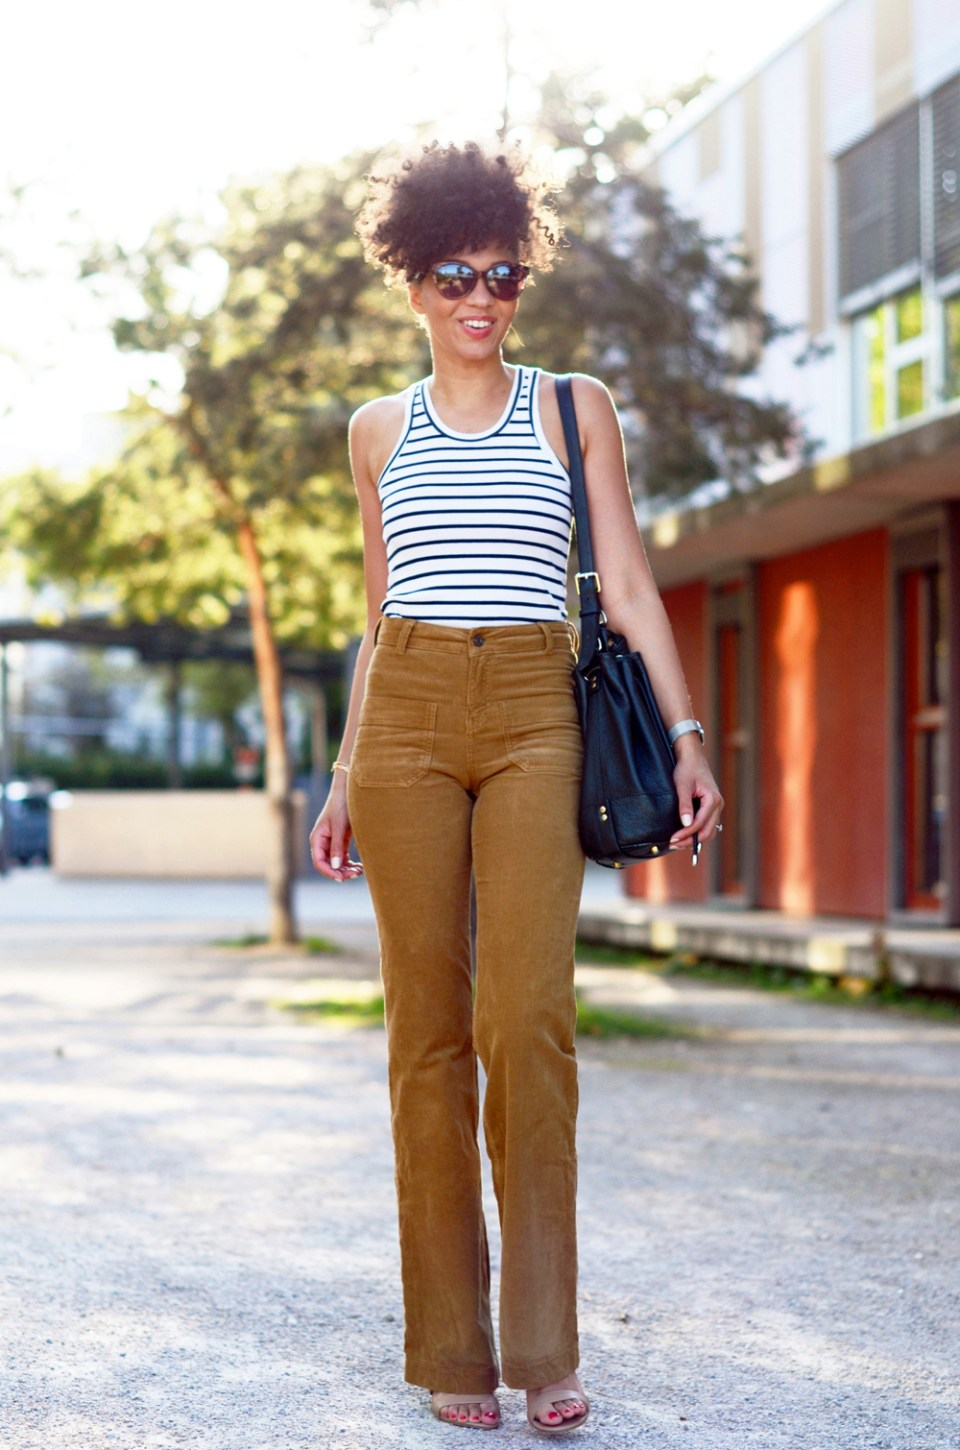 mercredie-blog-mode-geneve-suisse-blogueuse-bloggeuse-optic2000-lunettes-de-soleil-MAUI-JIM-natural-hair-frohawk-pantalon-vanessa-bruno-flare-Dompay5